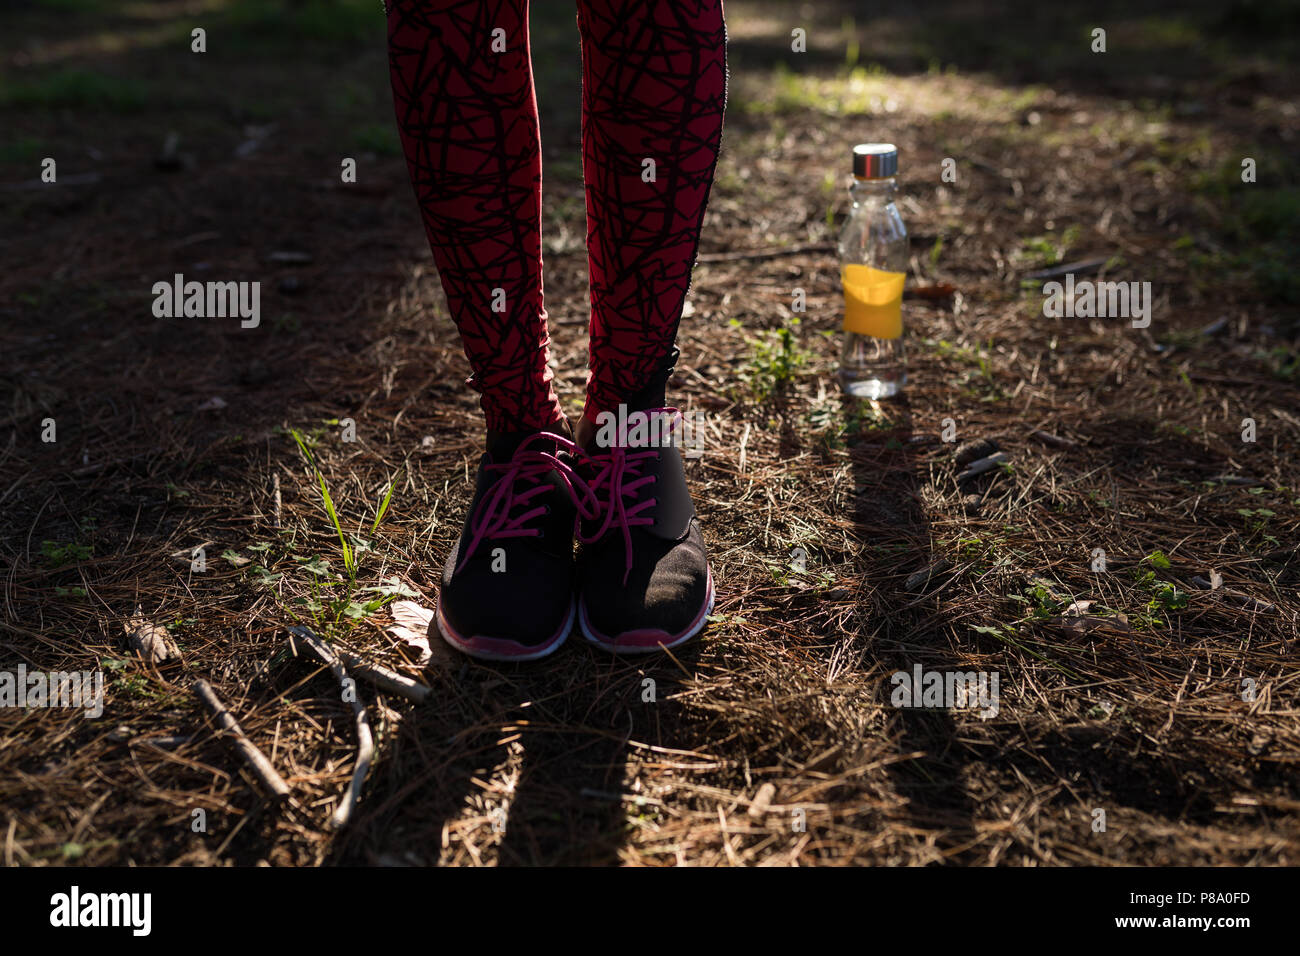 Female athlete wearing sneakers standing next to water bottle - Stock Image